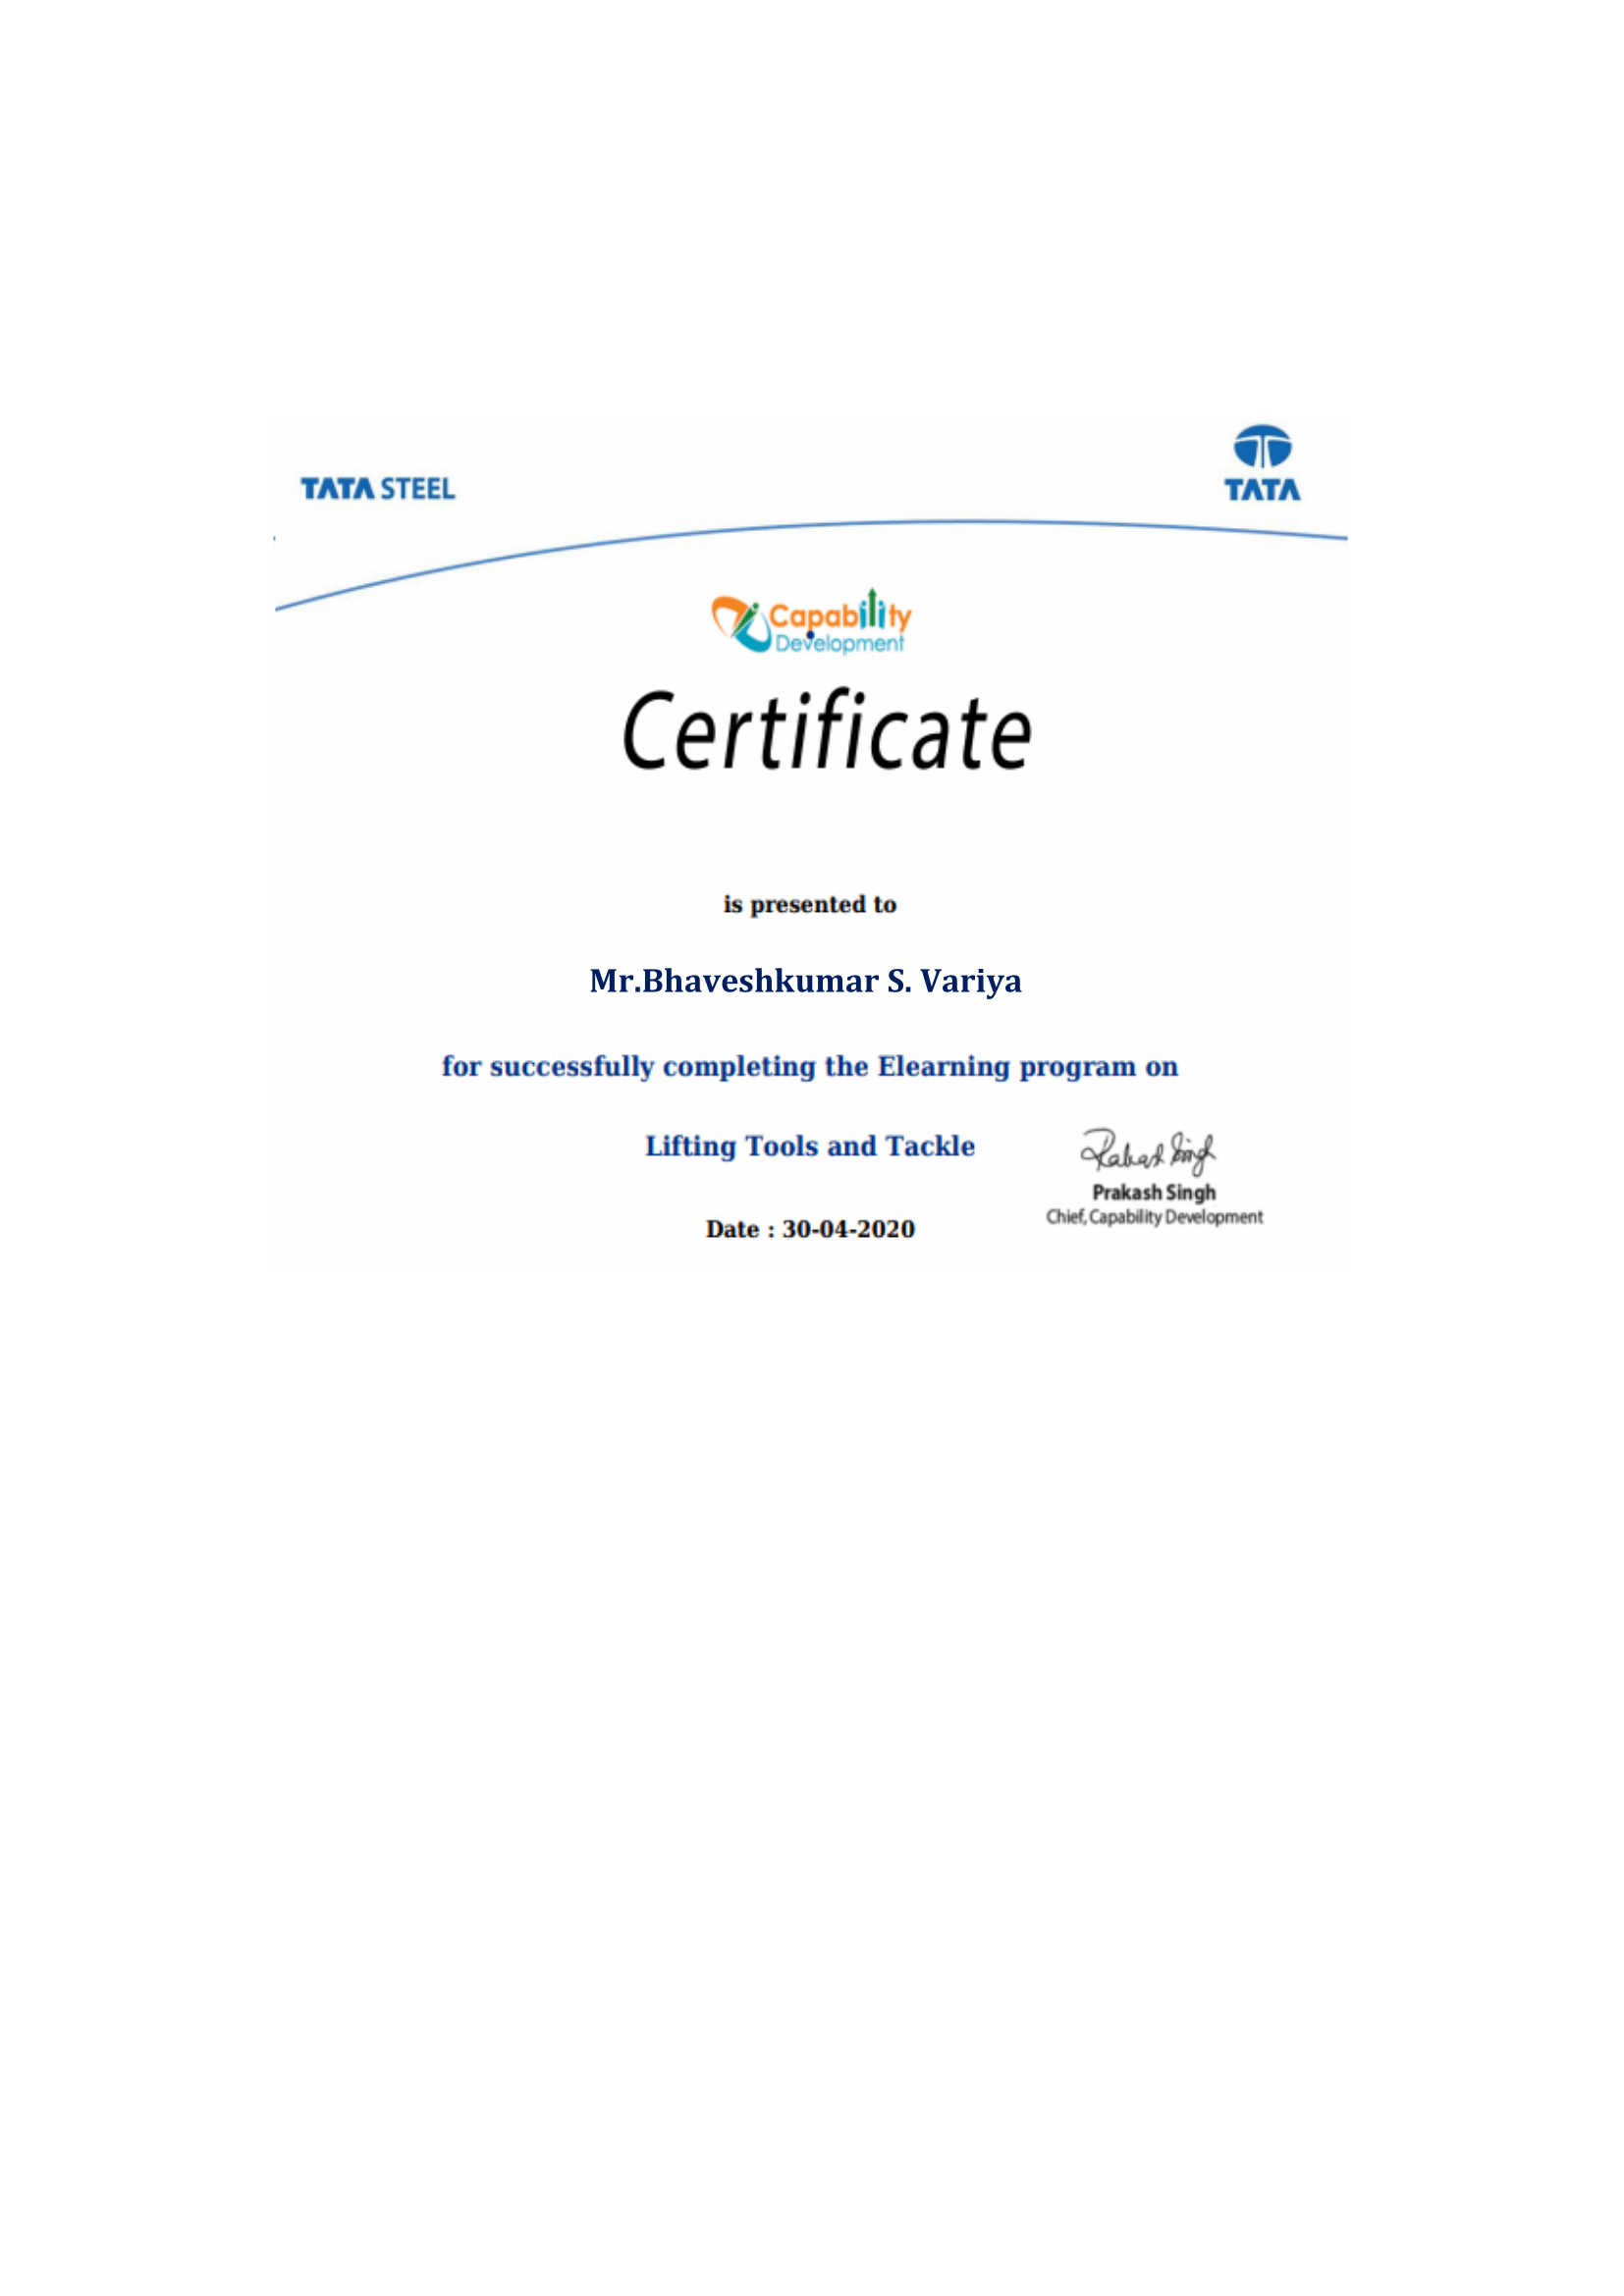 Staff Achievements Lect. Bhavesh Variya successfully completed certified program on Lifting tool and tackle